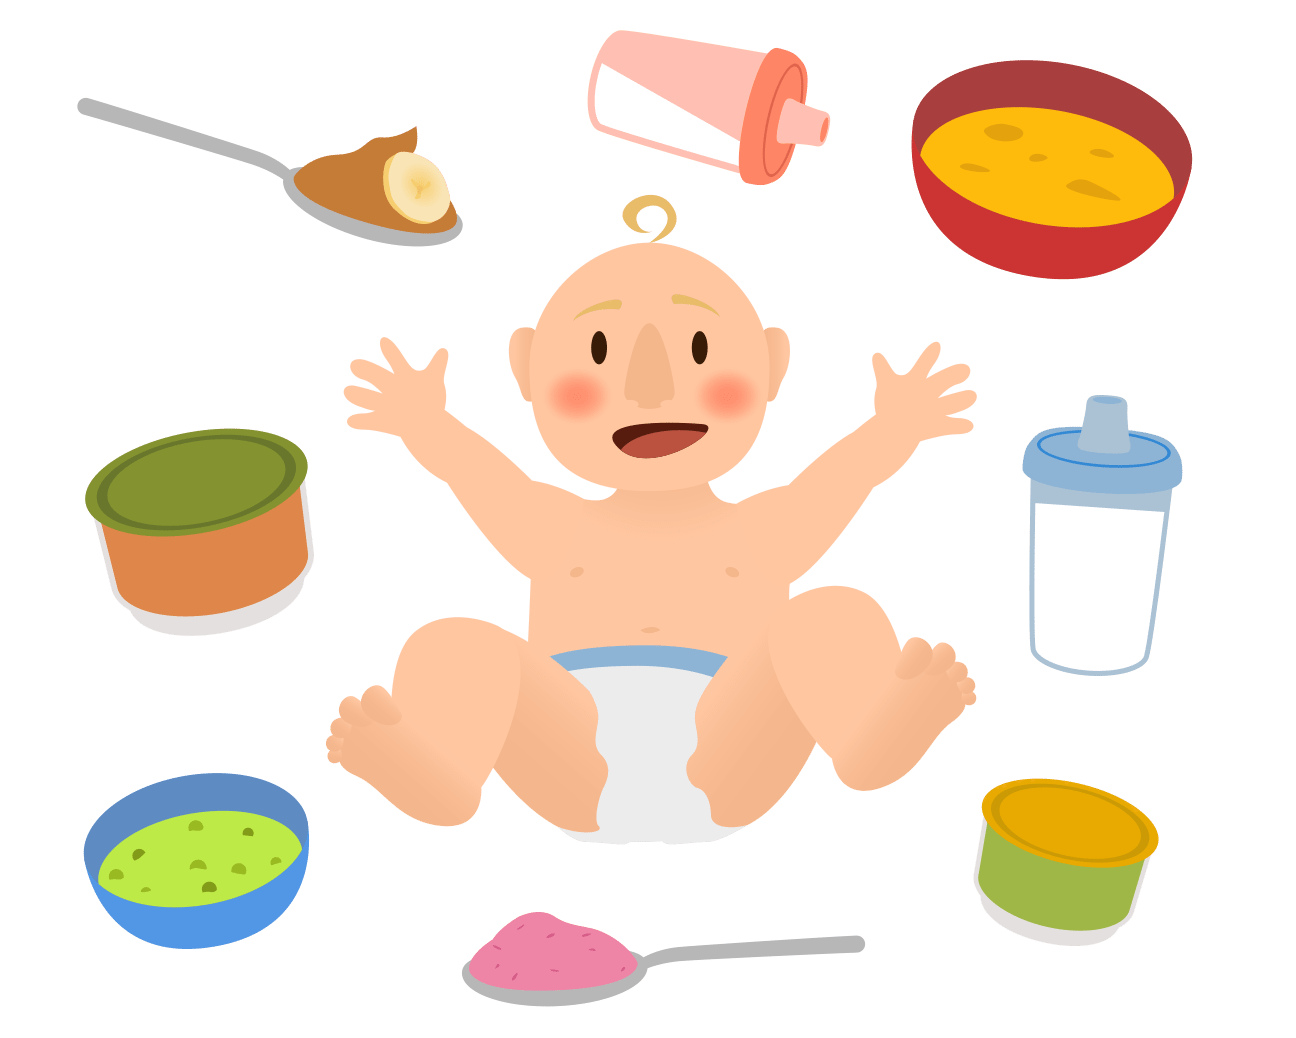 jpg library download Sneak peek nutrition food. Movement clipart baby exercise.